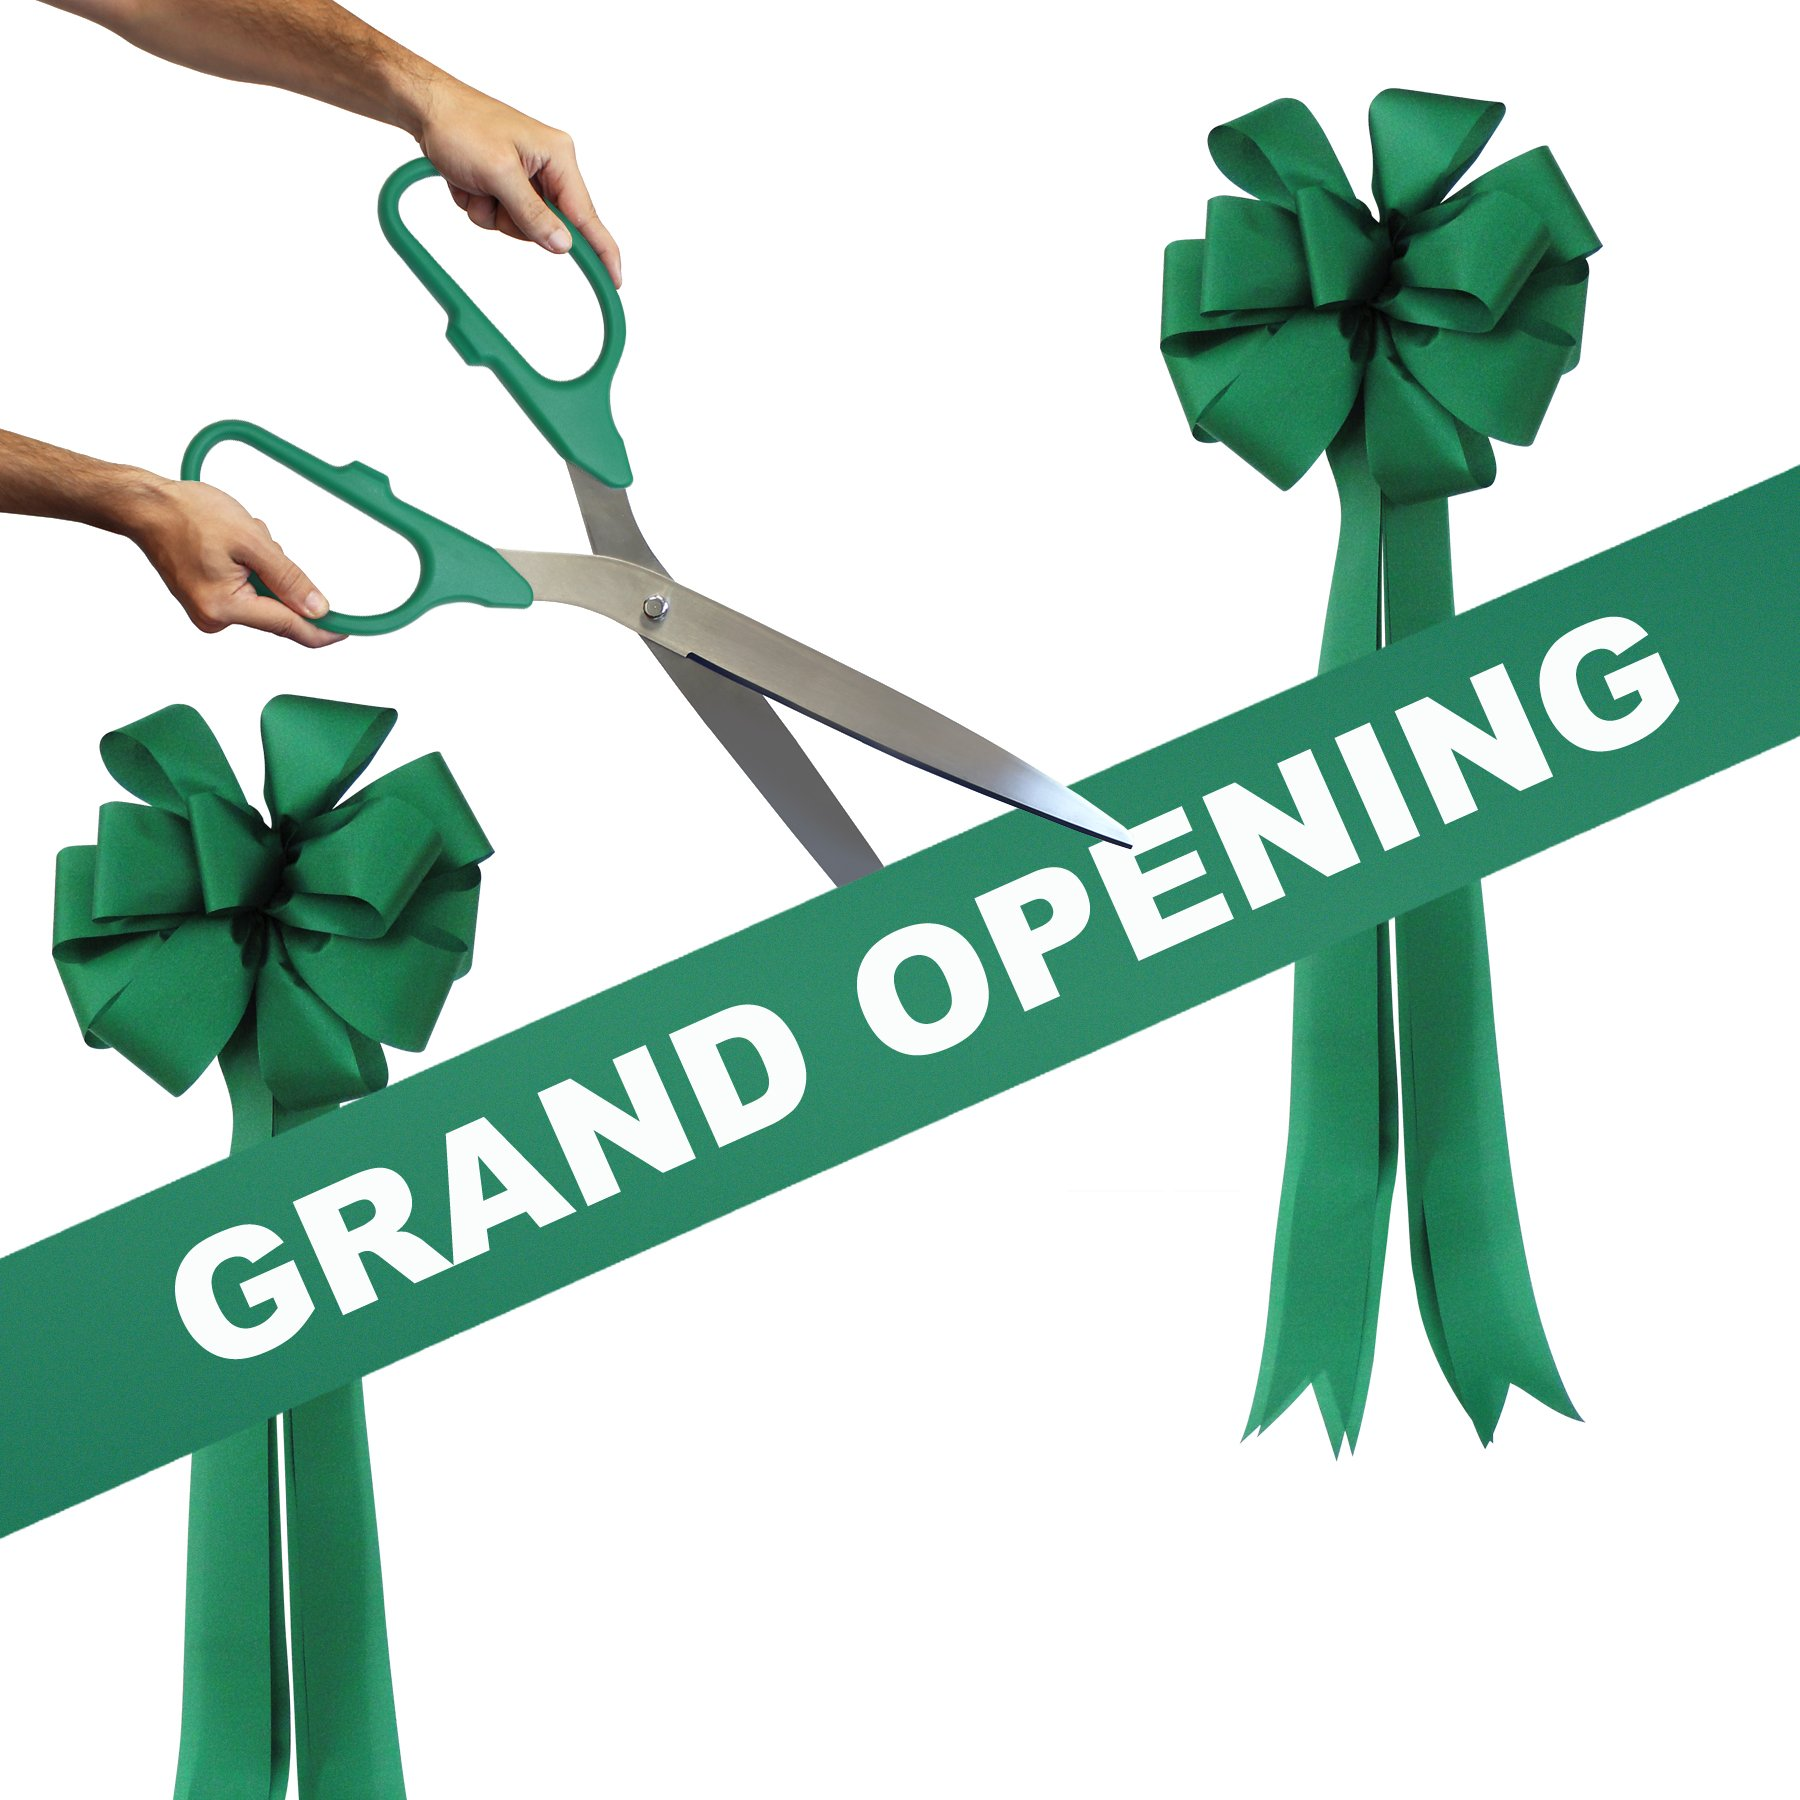 Grand Opening Kit - 25'' Green/Silver Ceremonial Ribbon Cutting Scissors with 5 Yards of 6'' Green Grand Opening Ribbon and 2 Green Bows